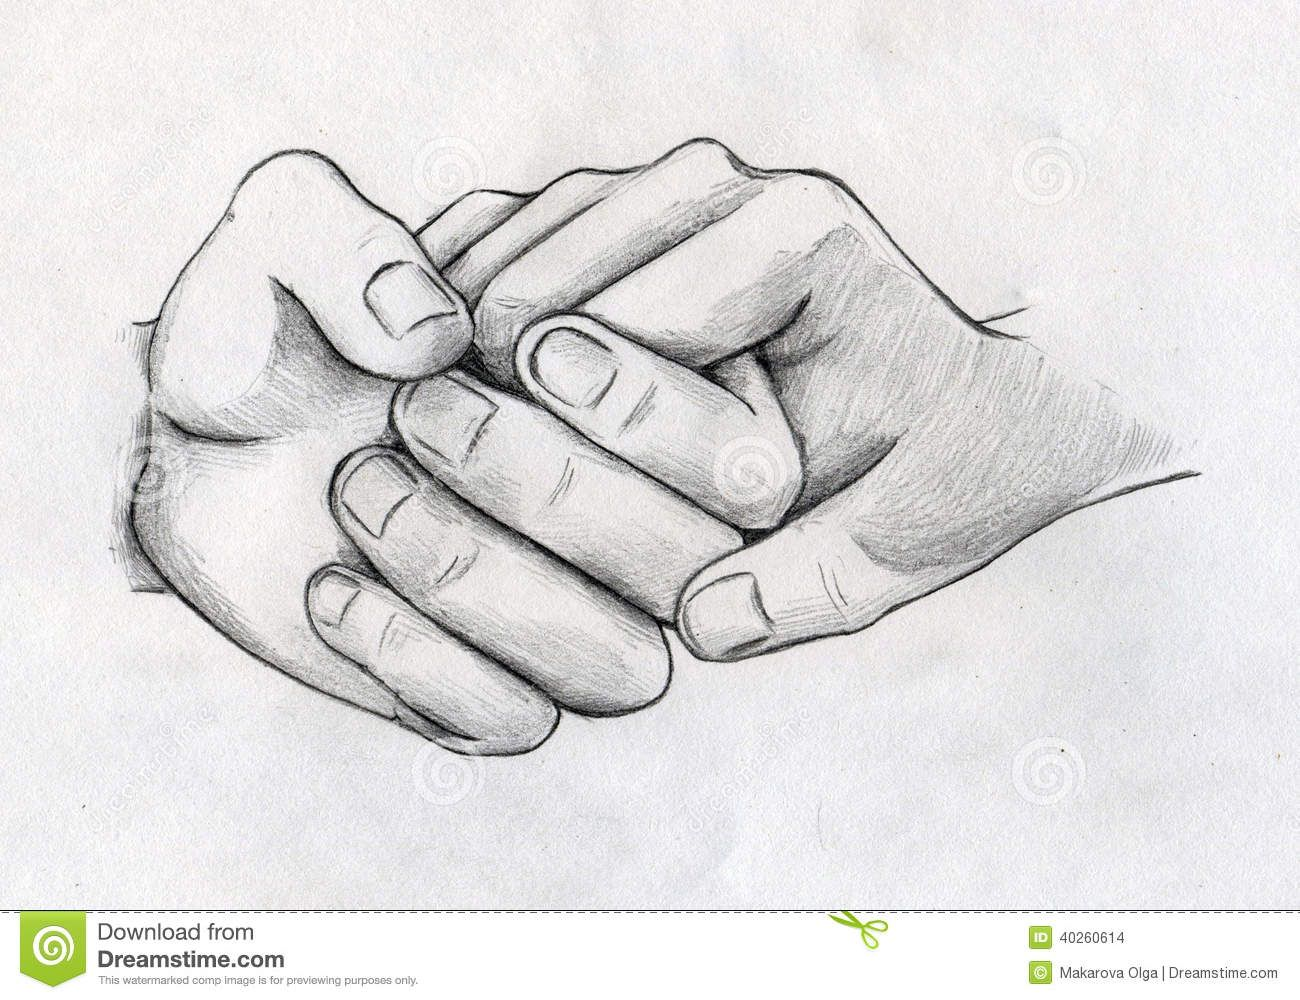 Uncategorized Holding Hands Sketch images for pencil drawing of couple holding hands hands